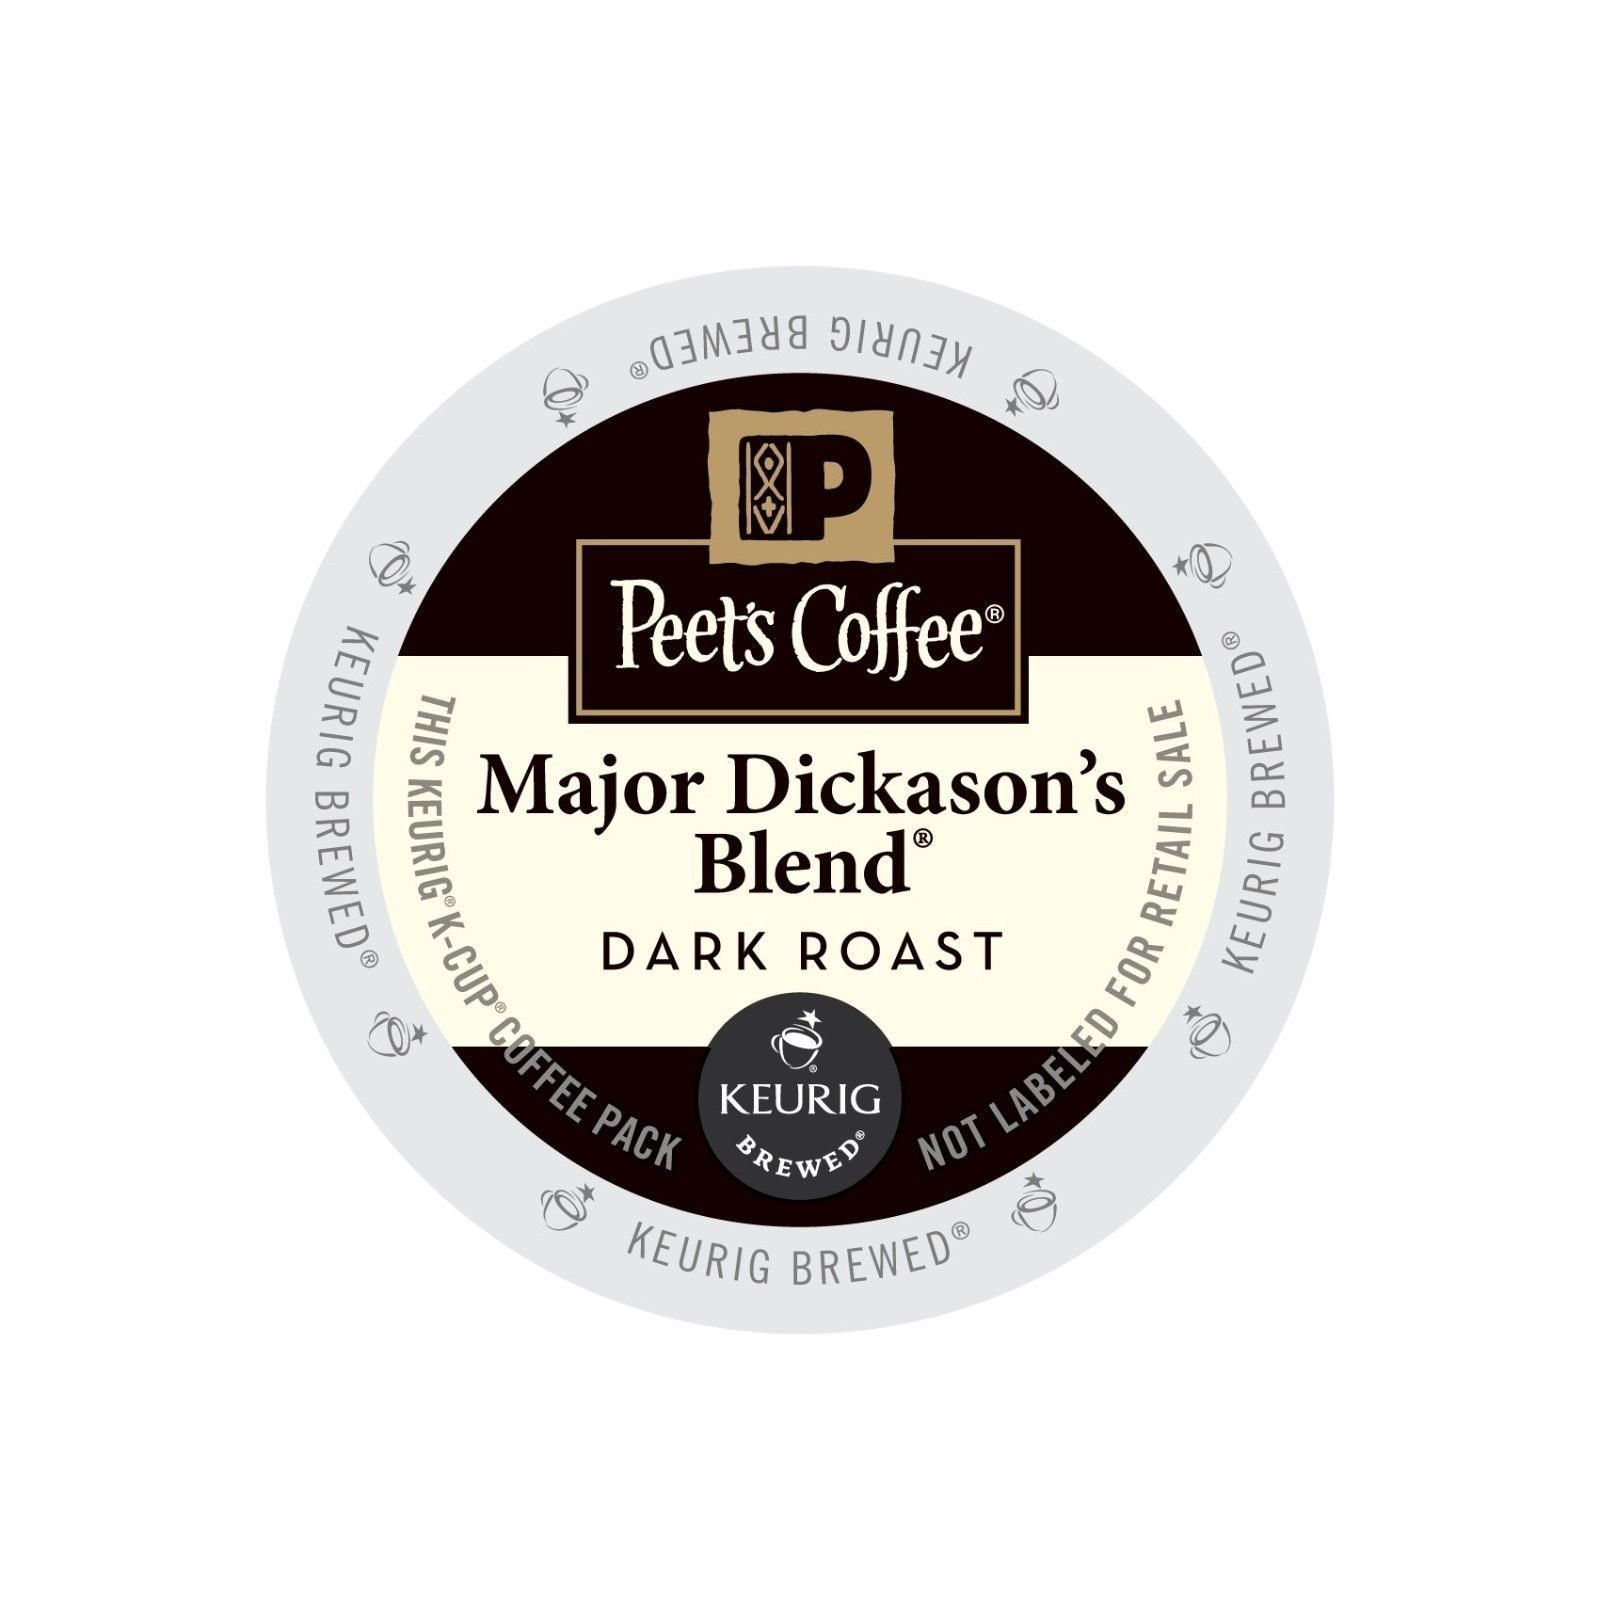 Peet's Coffee Major Dickason's Blend Coffee, 88 Kcups, FREE SHIPPING